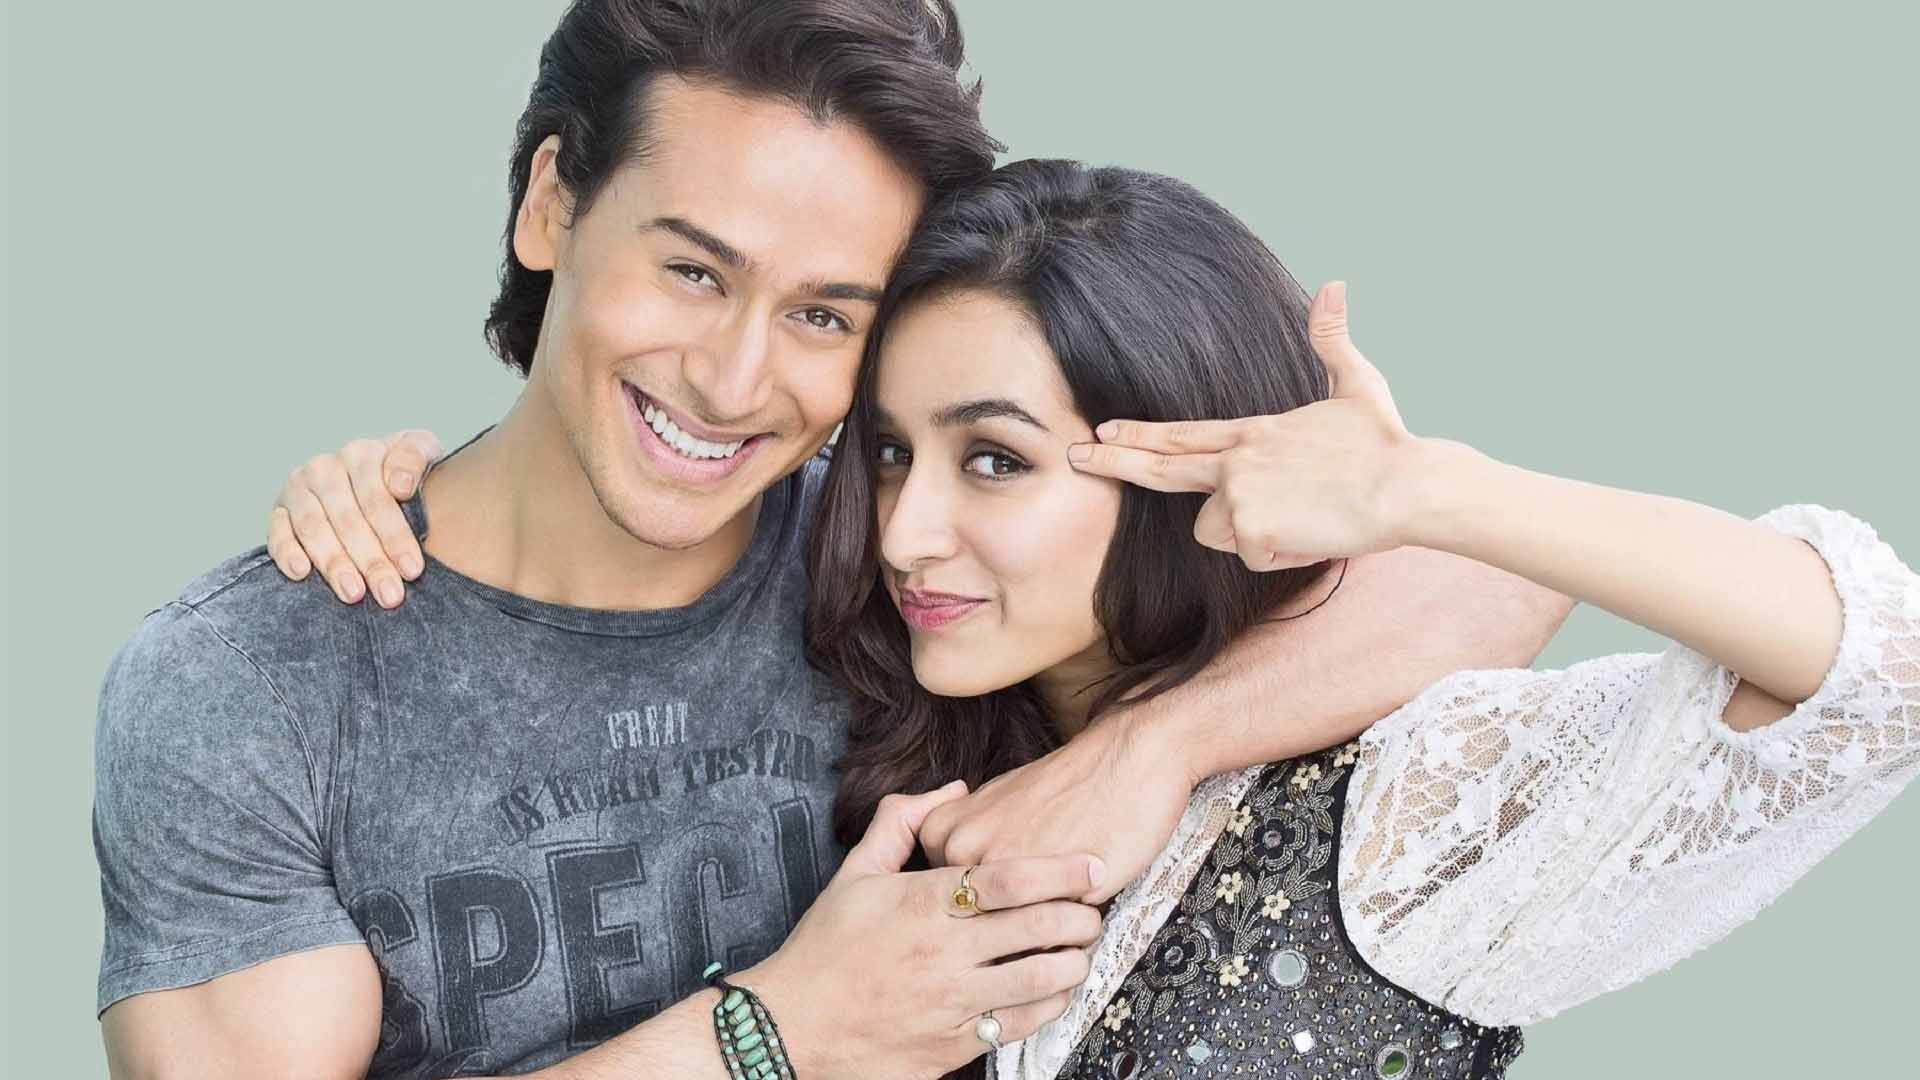 are you looking for latest download tiger shroff hd wallpapers